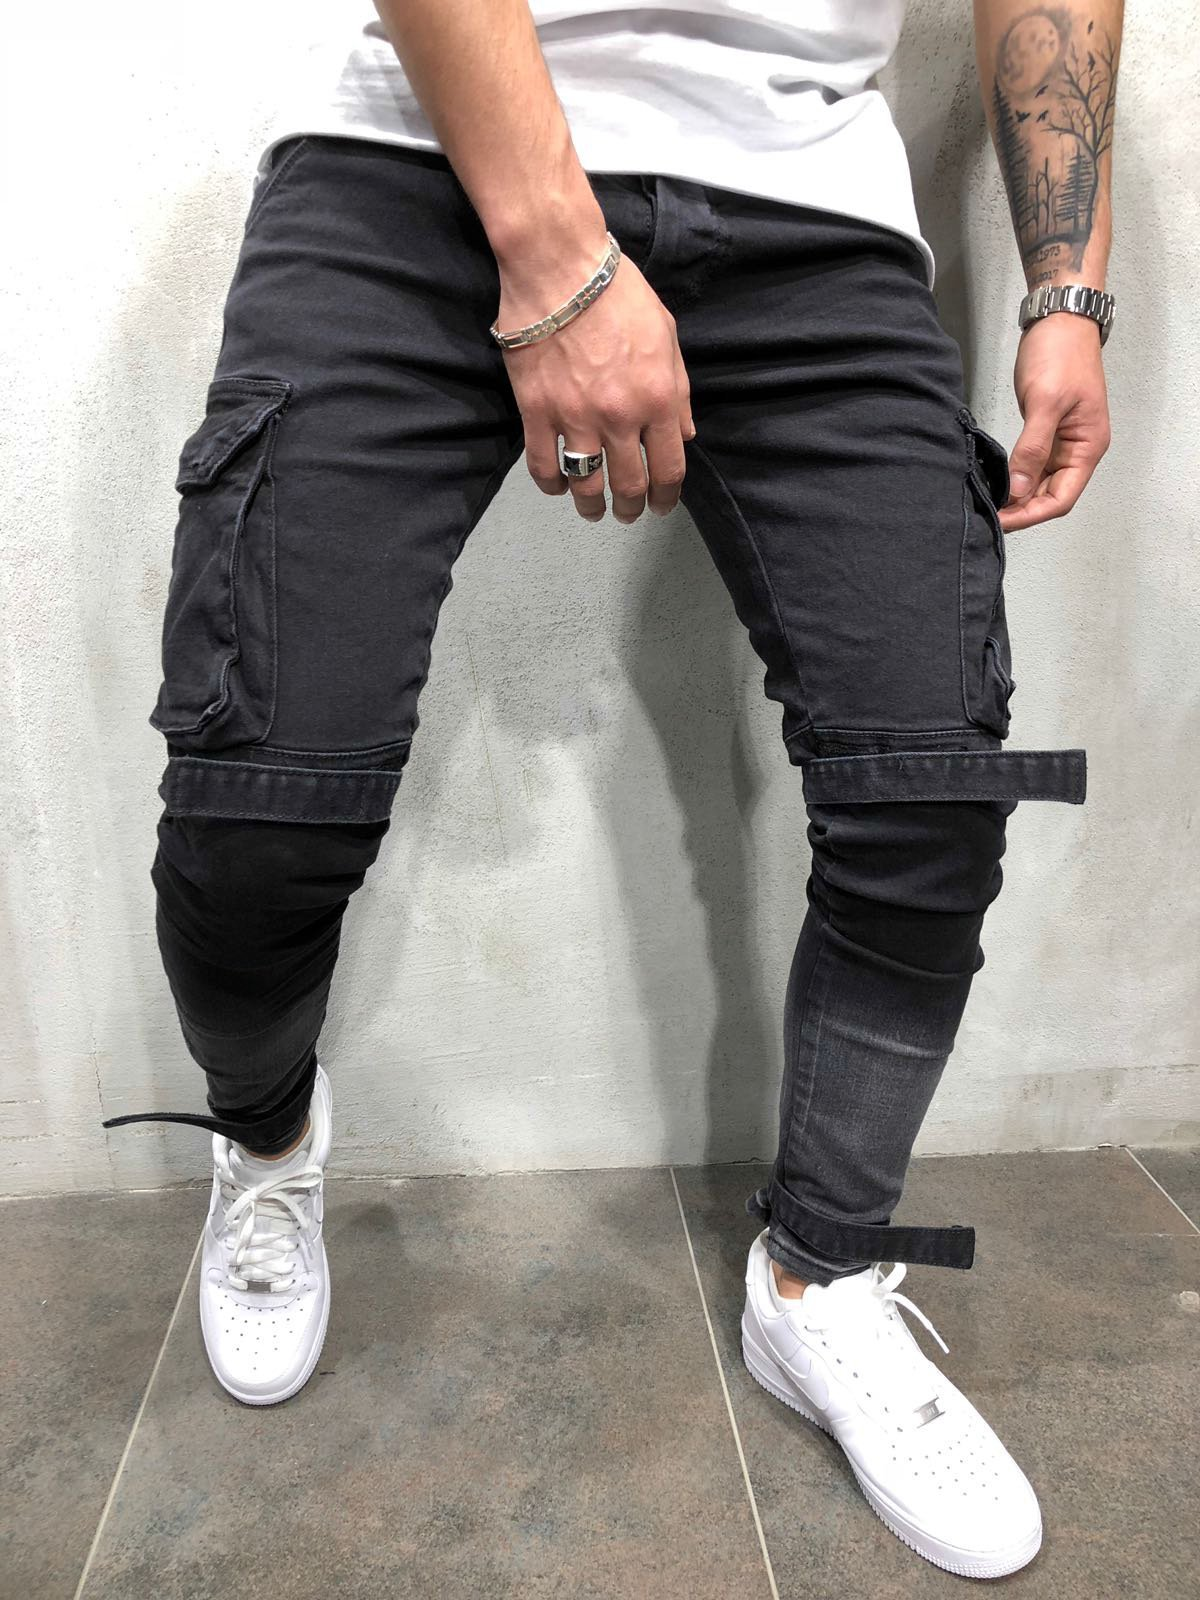 2018 New Arrived Men Cargo Pockets biker   jeans   denim slim supper skinny hip hop   jeans   men